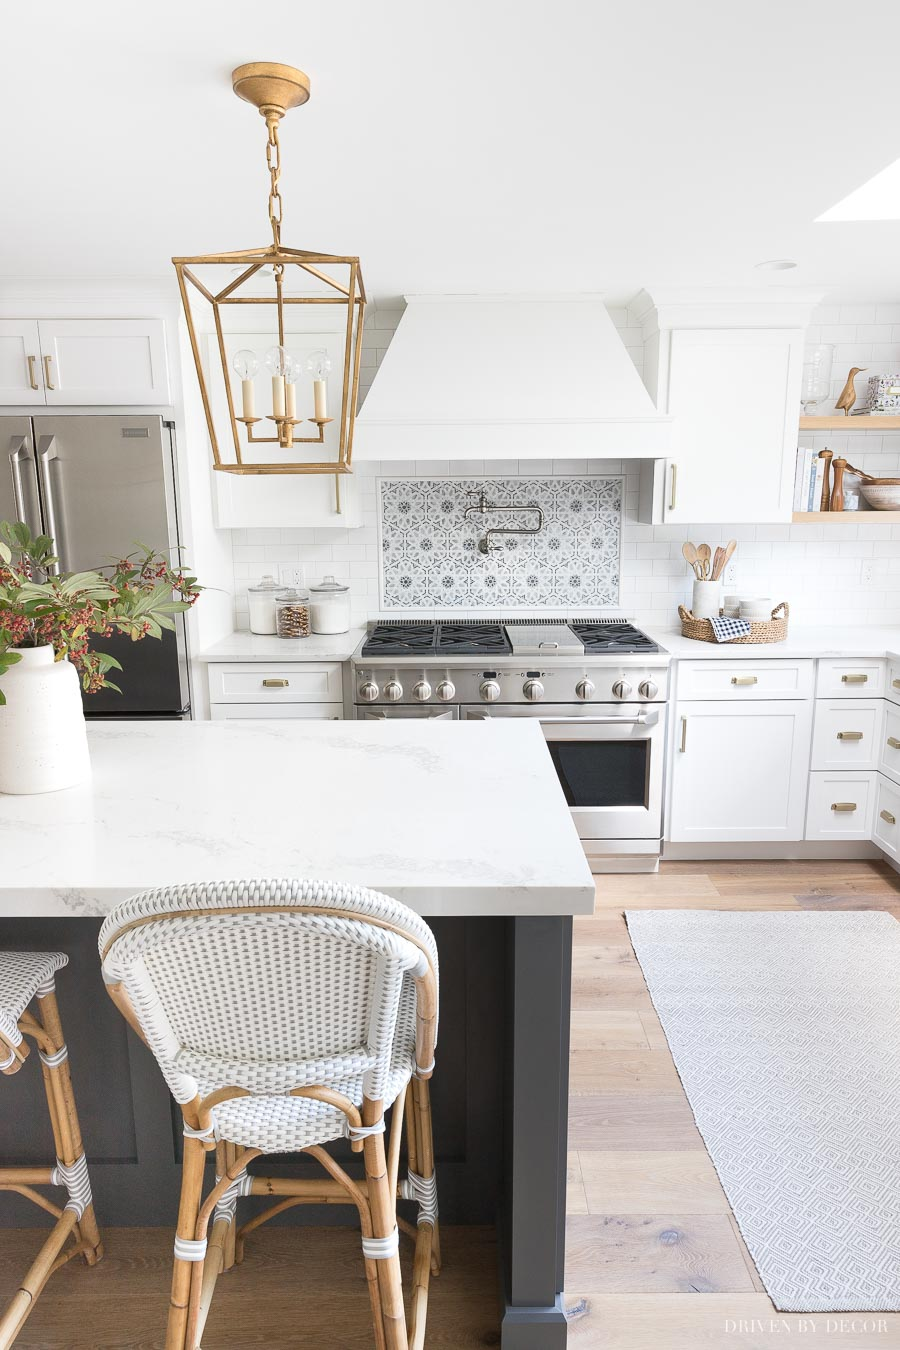 Love the appliances in this kitchen! She talks about all of her favorite appliance features in this post!